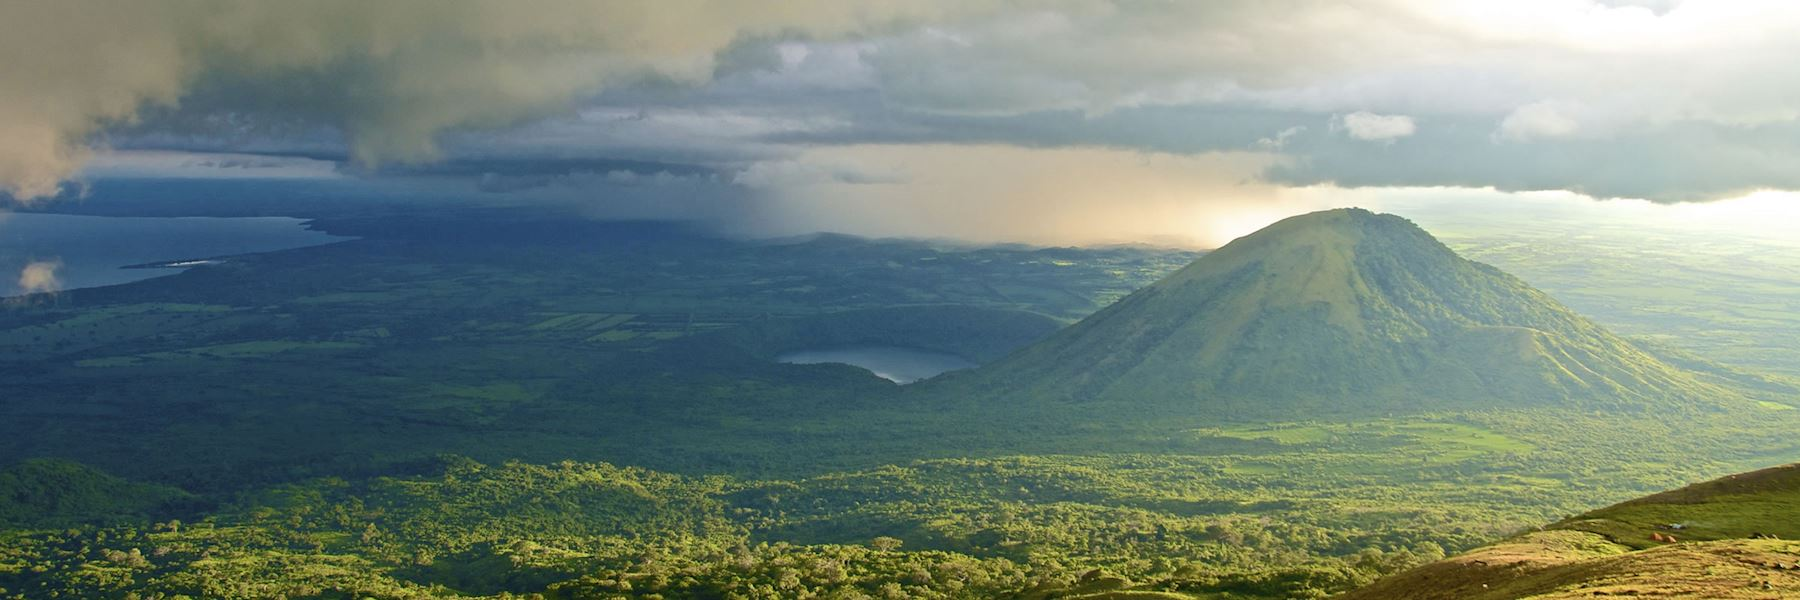 When is the best time to visit Nicaragua?